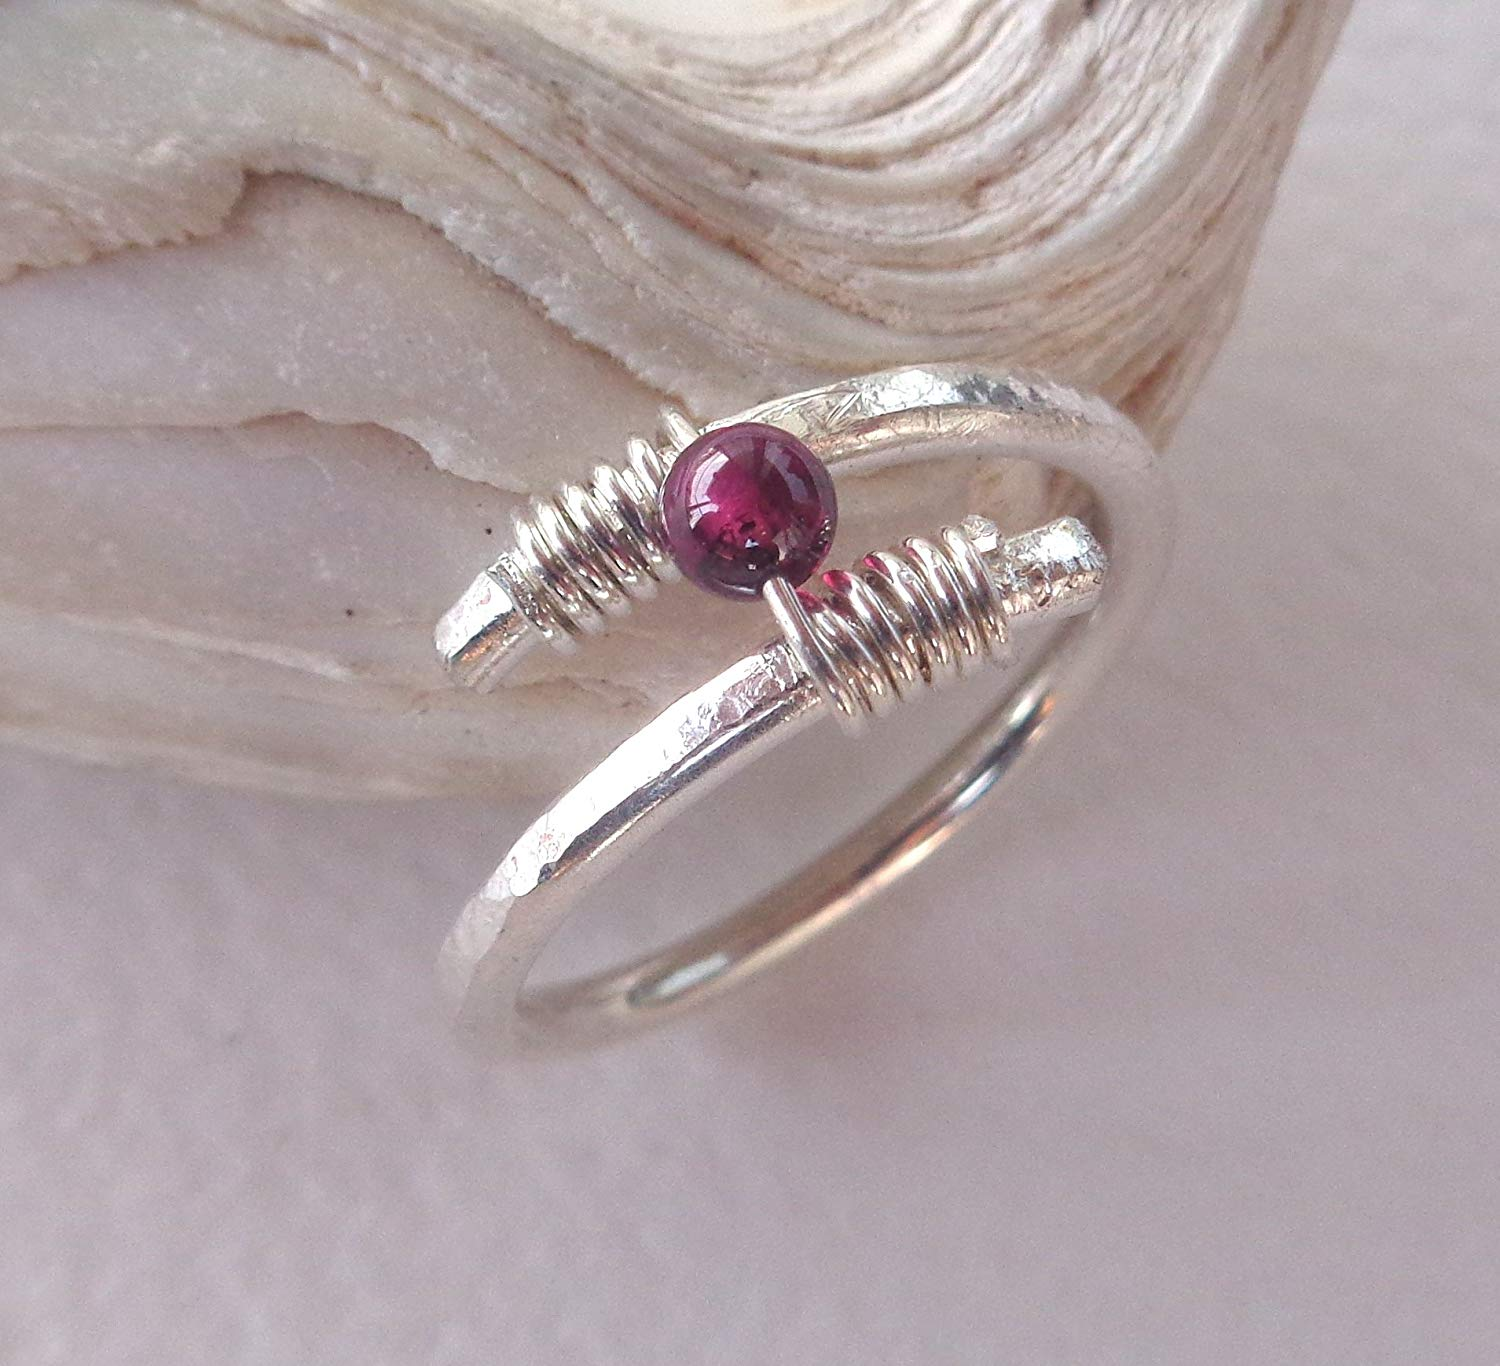 Garnet Wrapped Swirl Hammered Ring 925 Sterling Silver